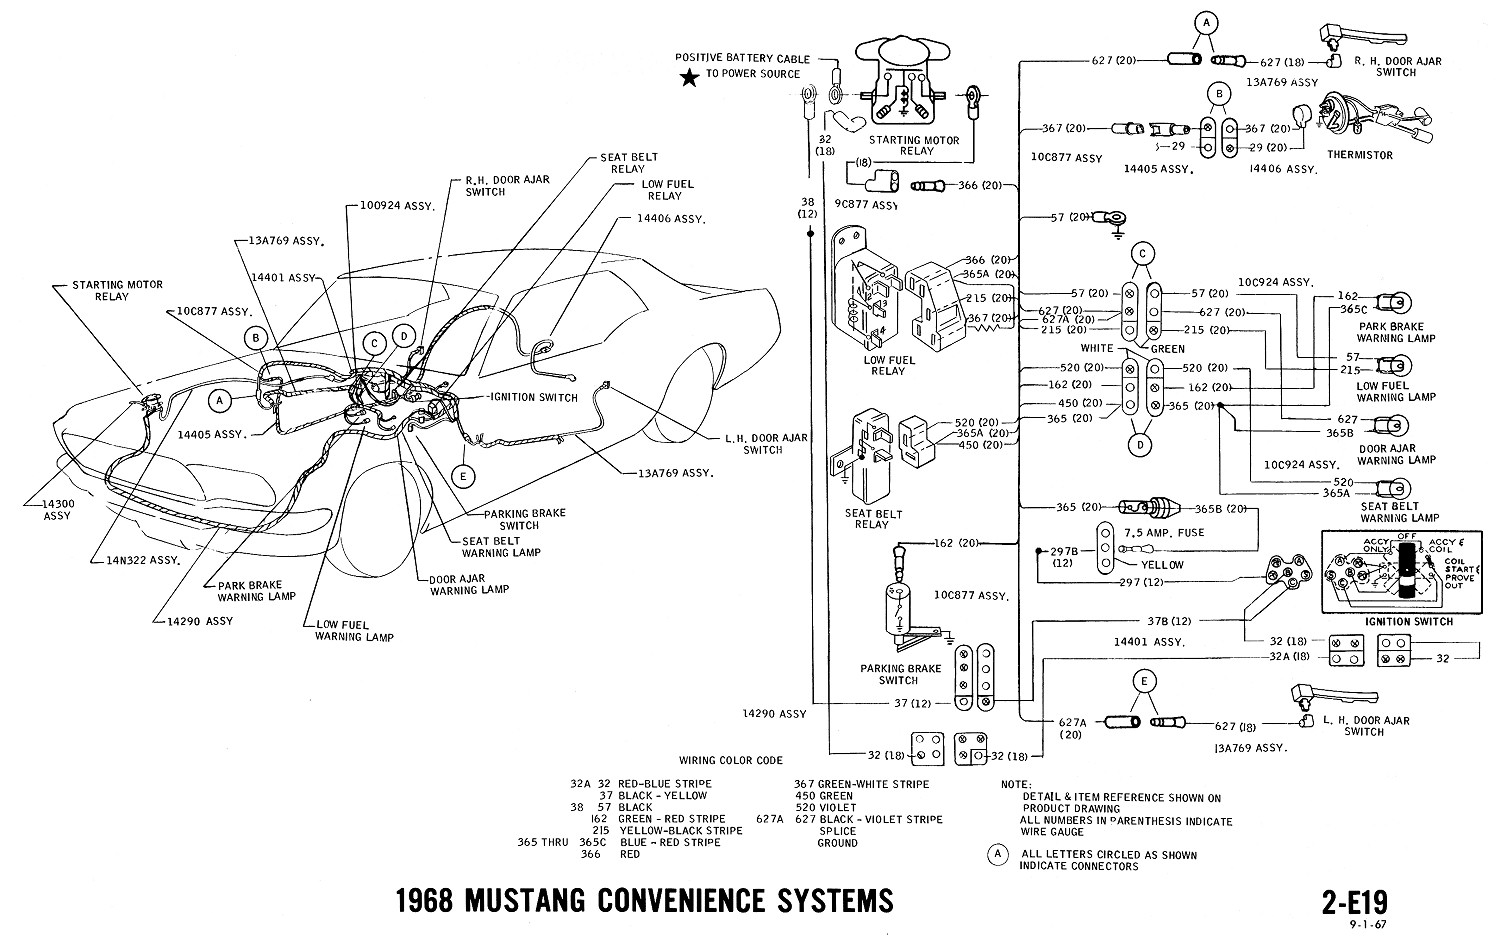 1969 Cougar Ignition Wiring Diagram Electrical House 69 Mustang Steering Column Block And Schematic Diagrams Images Gallery